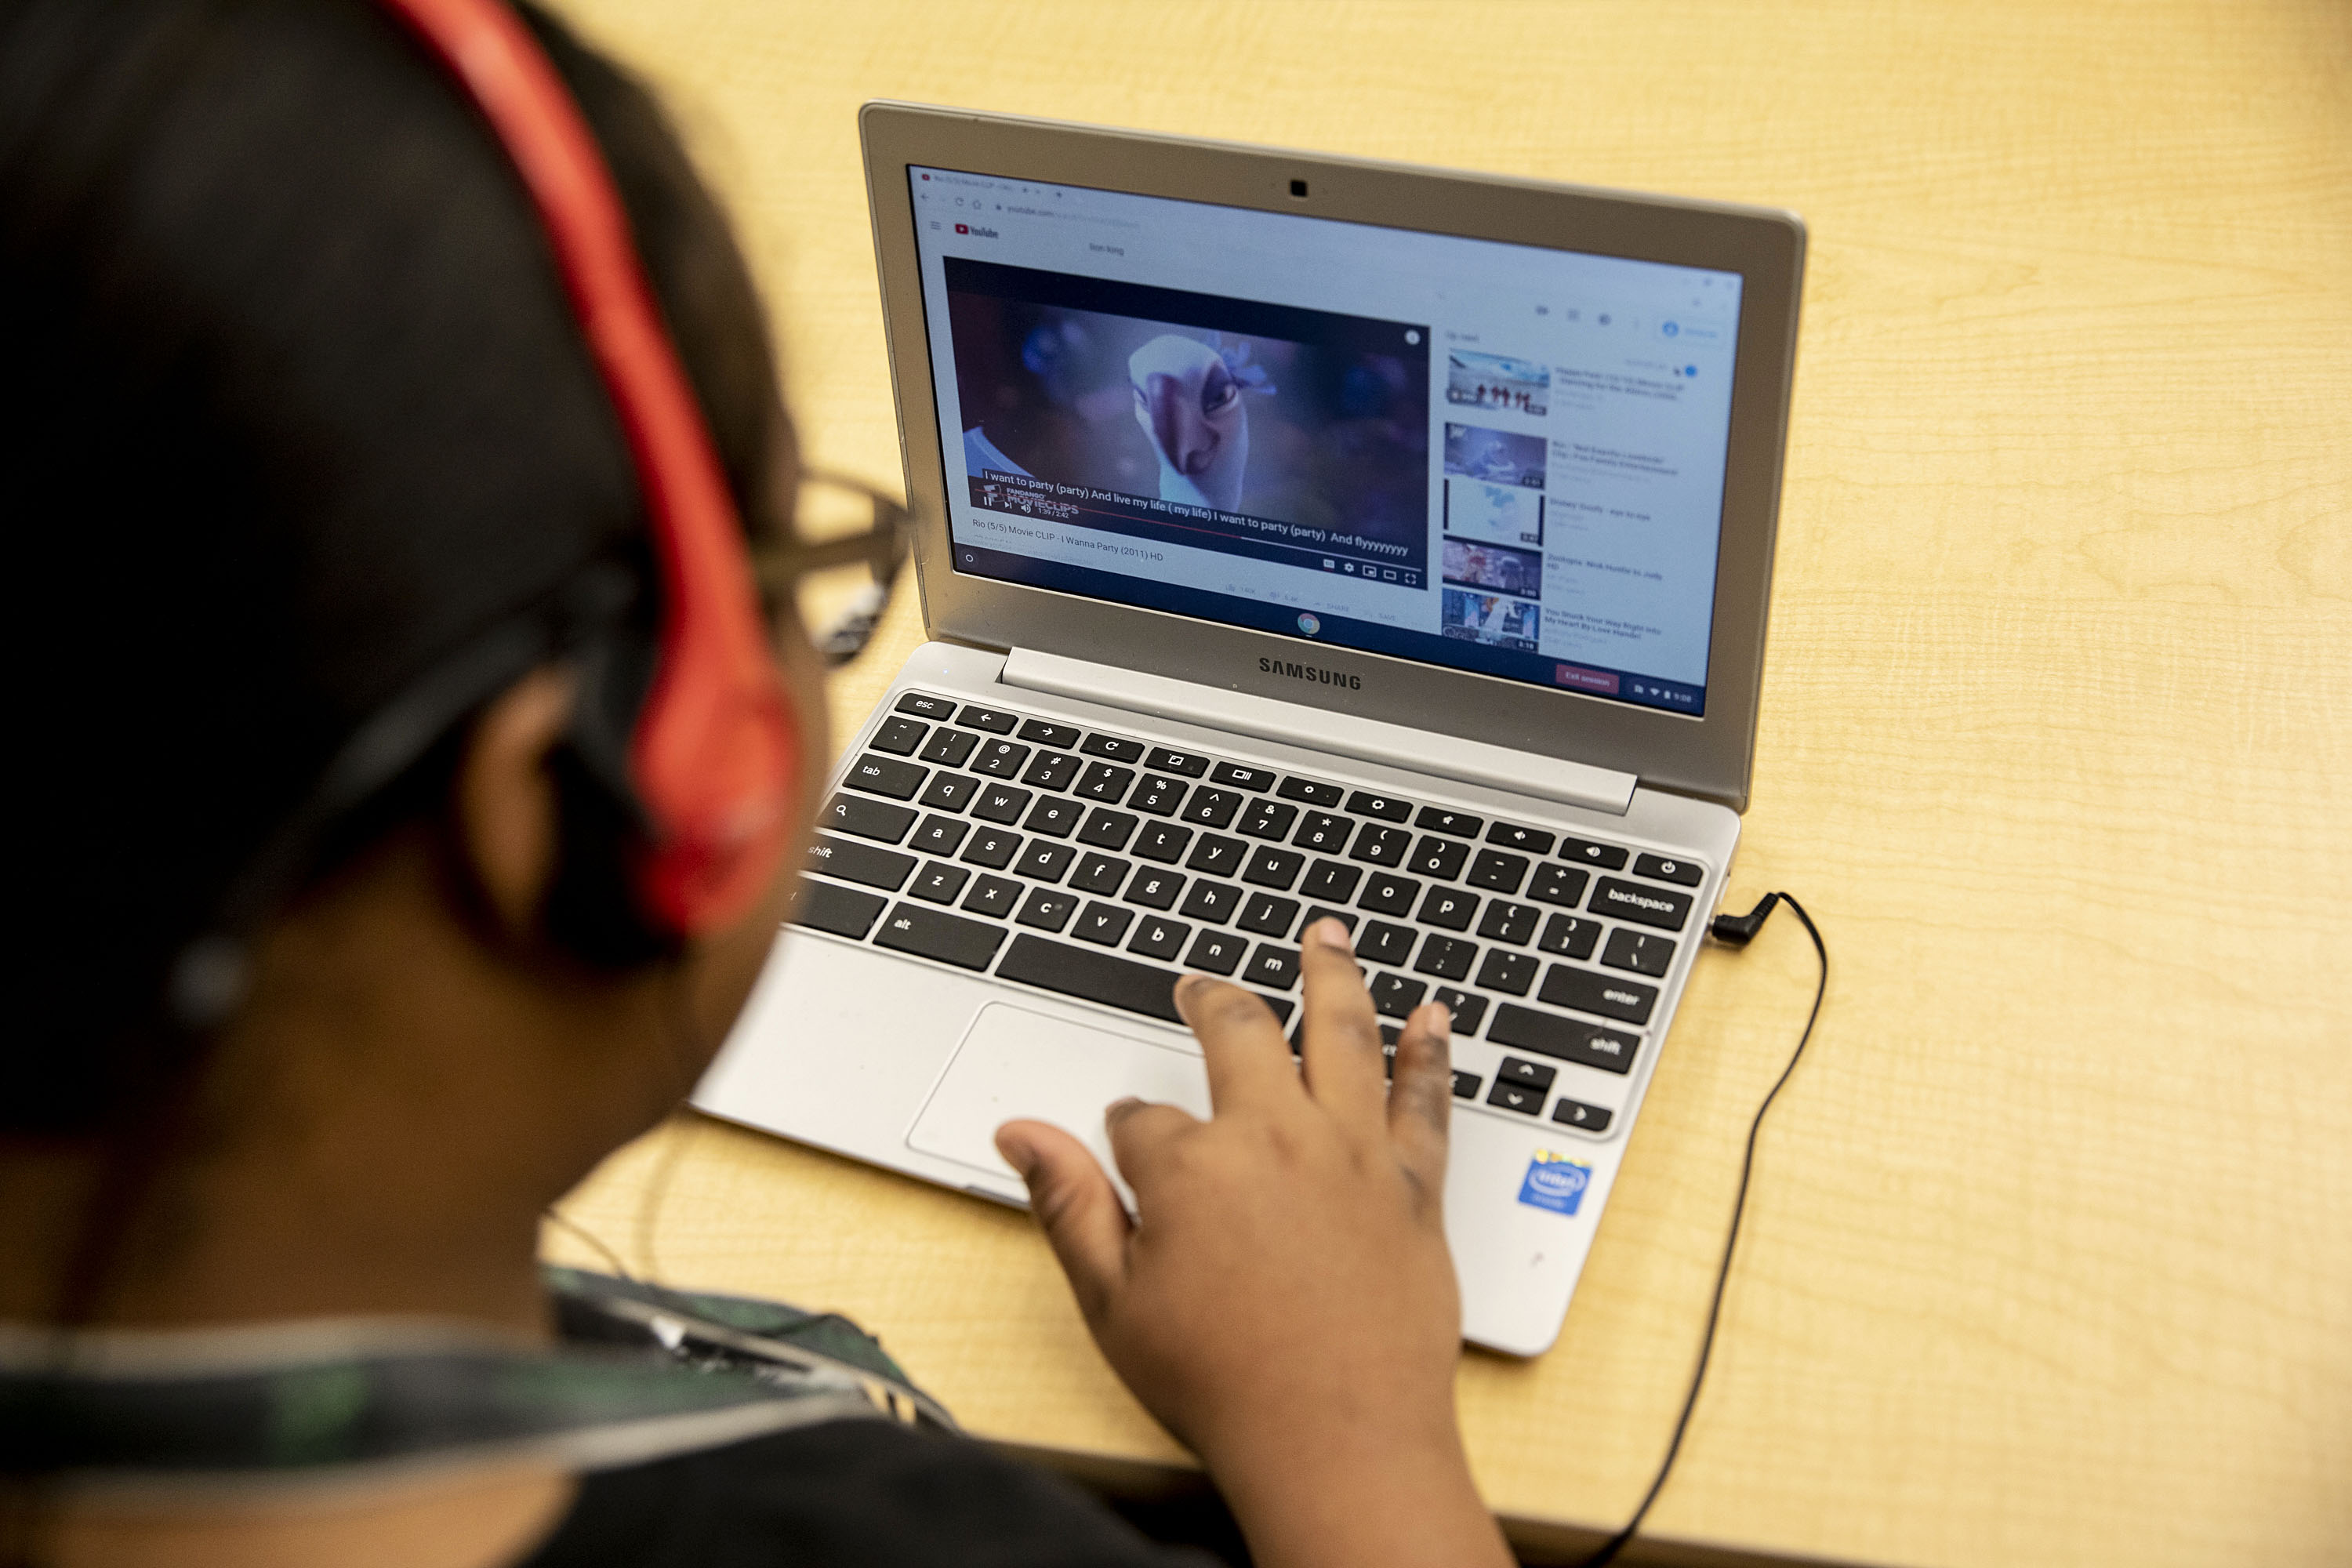 A student works on a laptop computer during a special education classroom exercise.